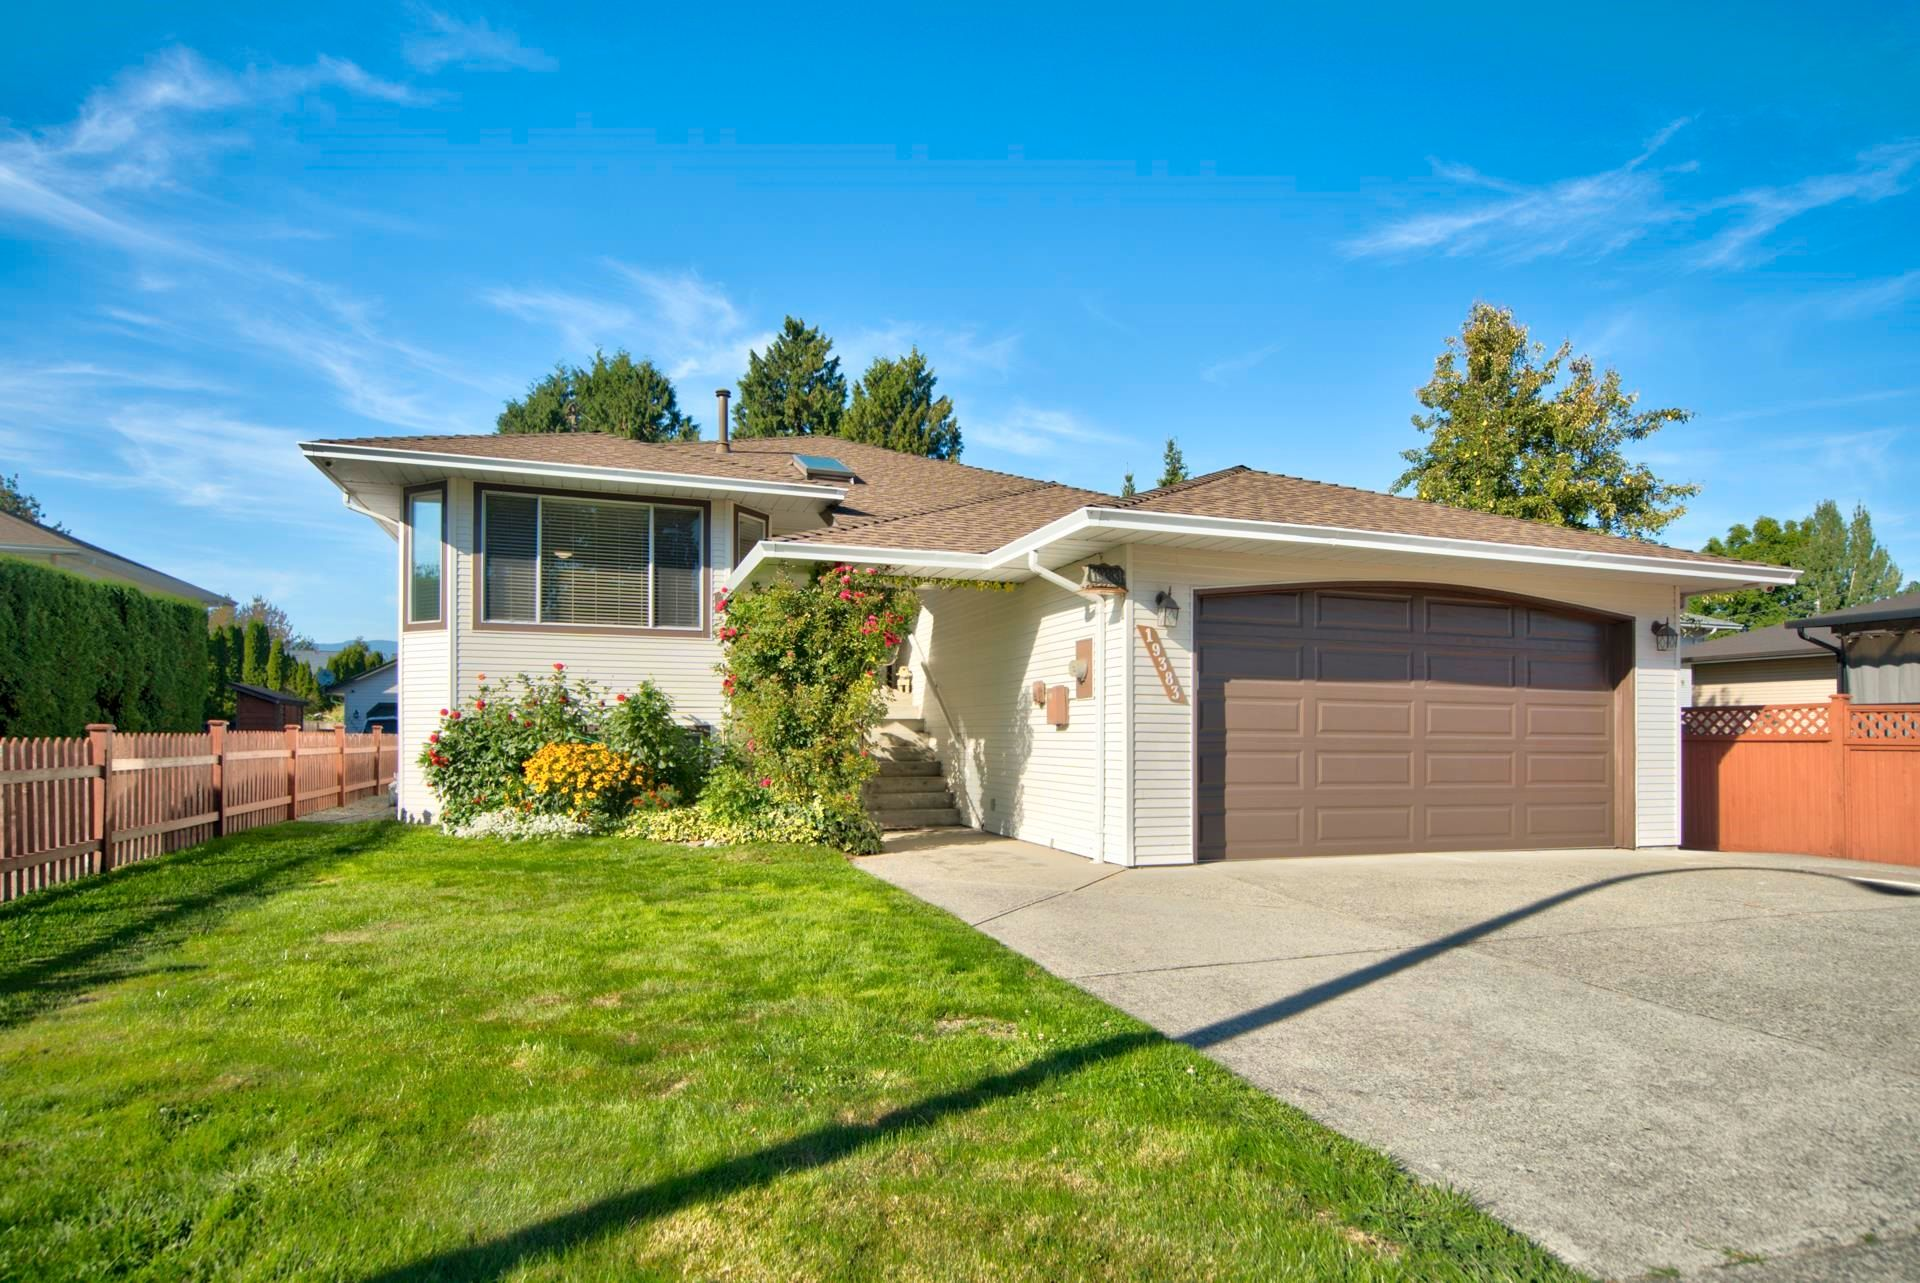 Main Photo: 19383 CUSICK Crescent in Pitt Meadows: Mid Meadows House for sale : MLS®# R2617633